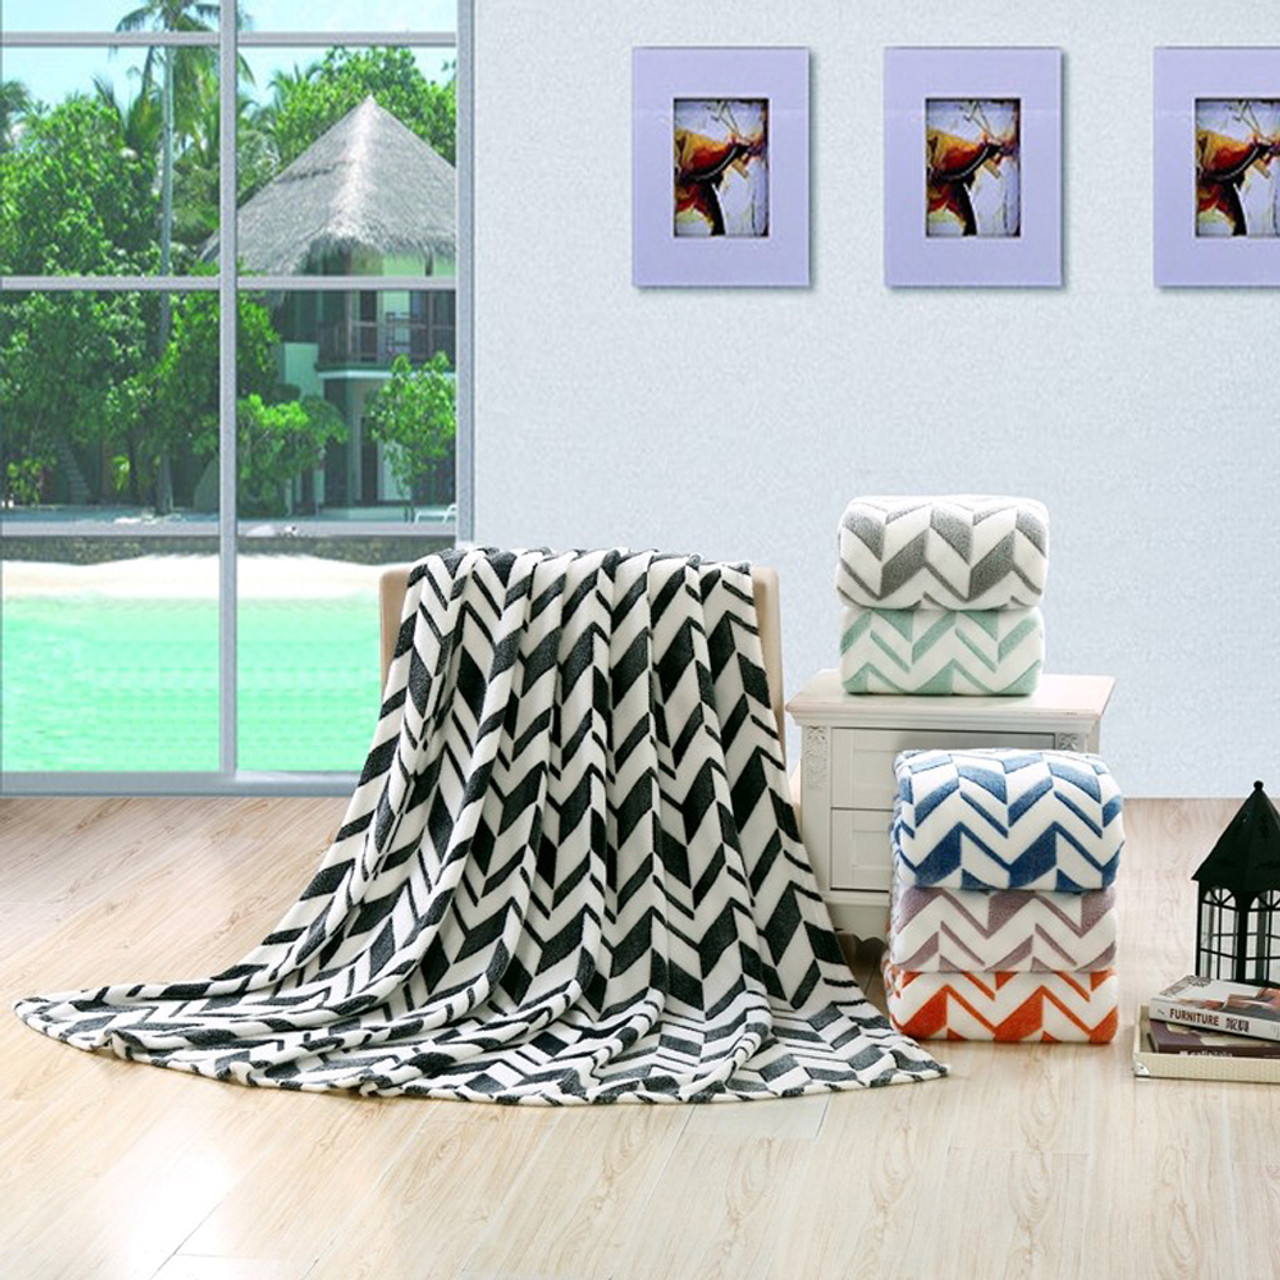 Throw Blankets Arrow Micro Plush Blankets Soft Light Weight Throw Blankets